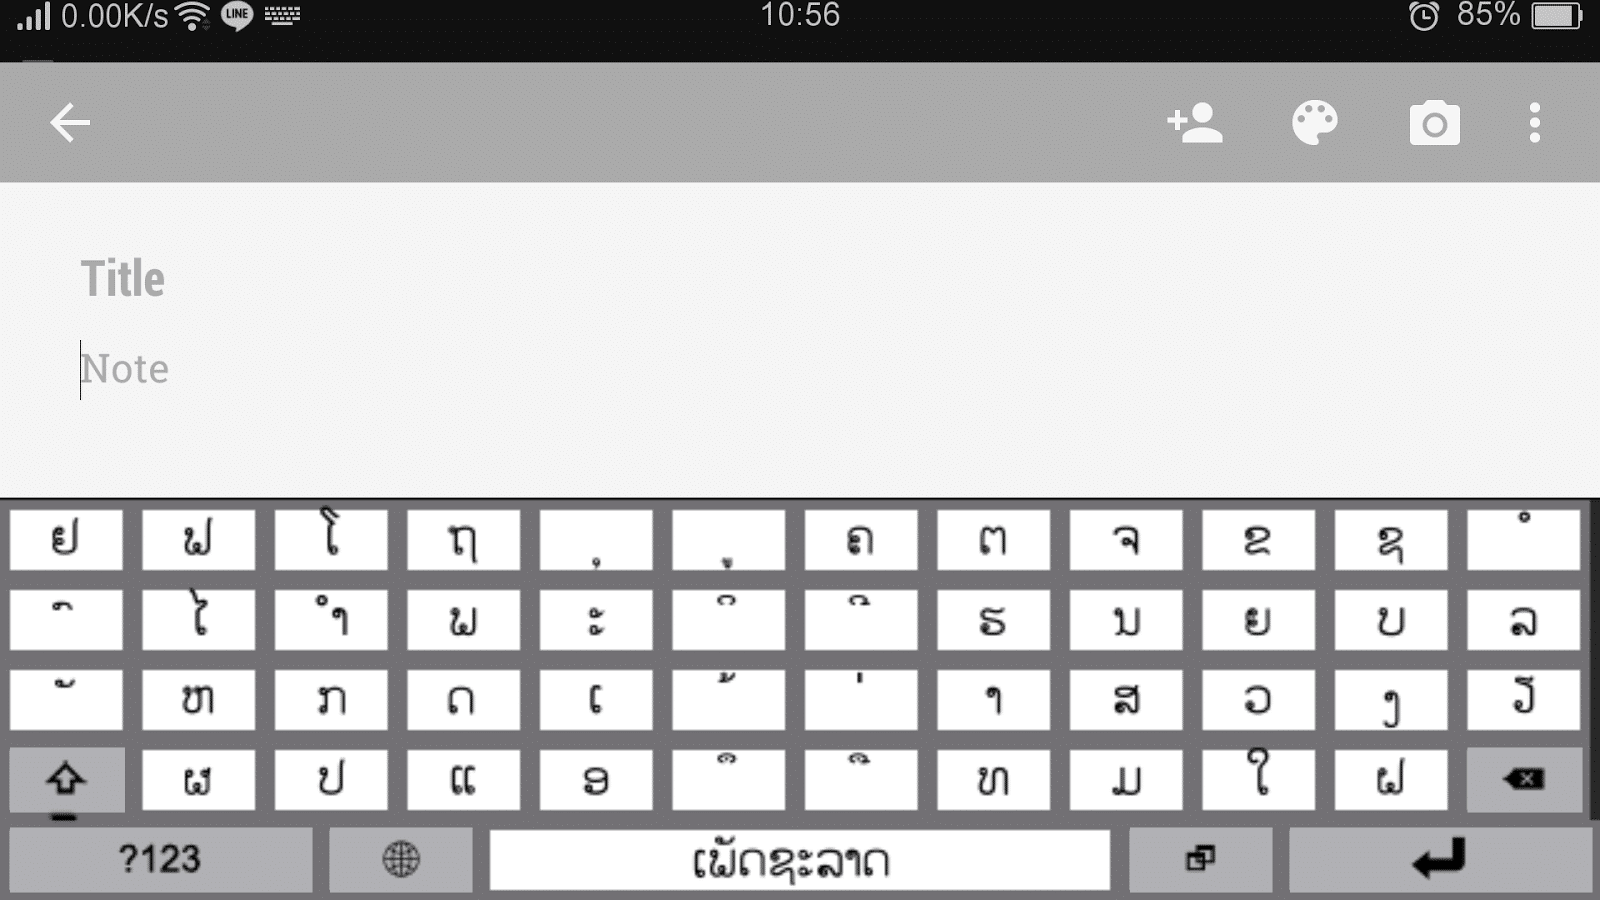 Save Amharic Keyboard Image